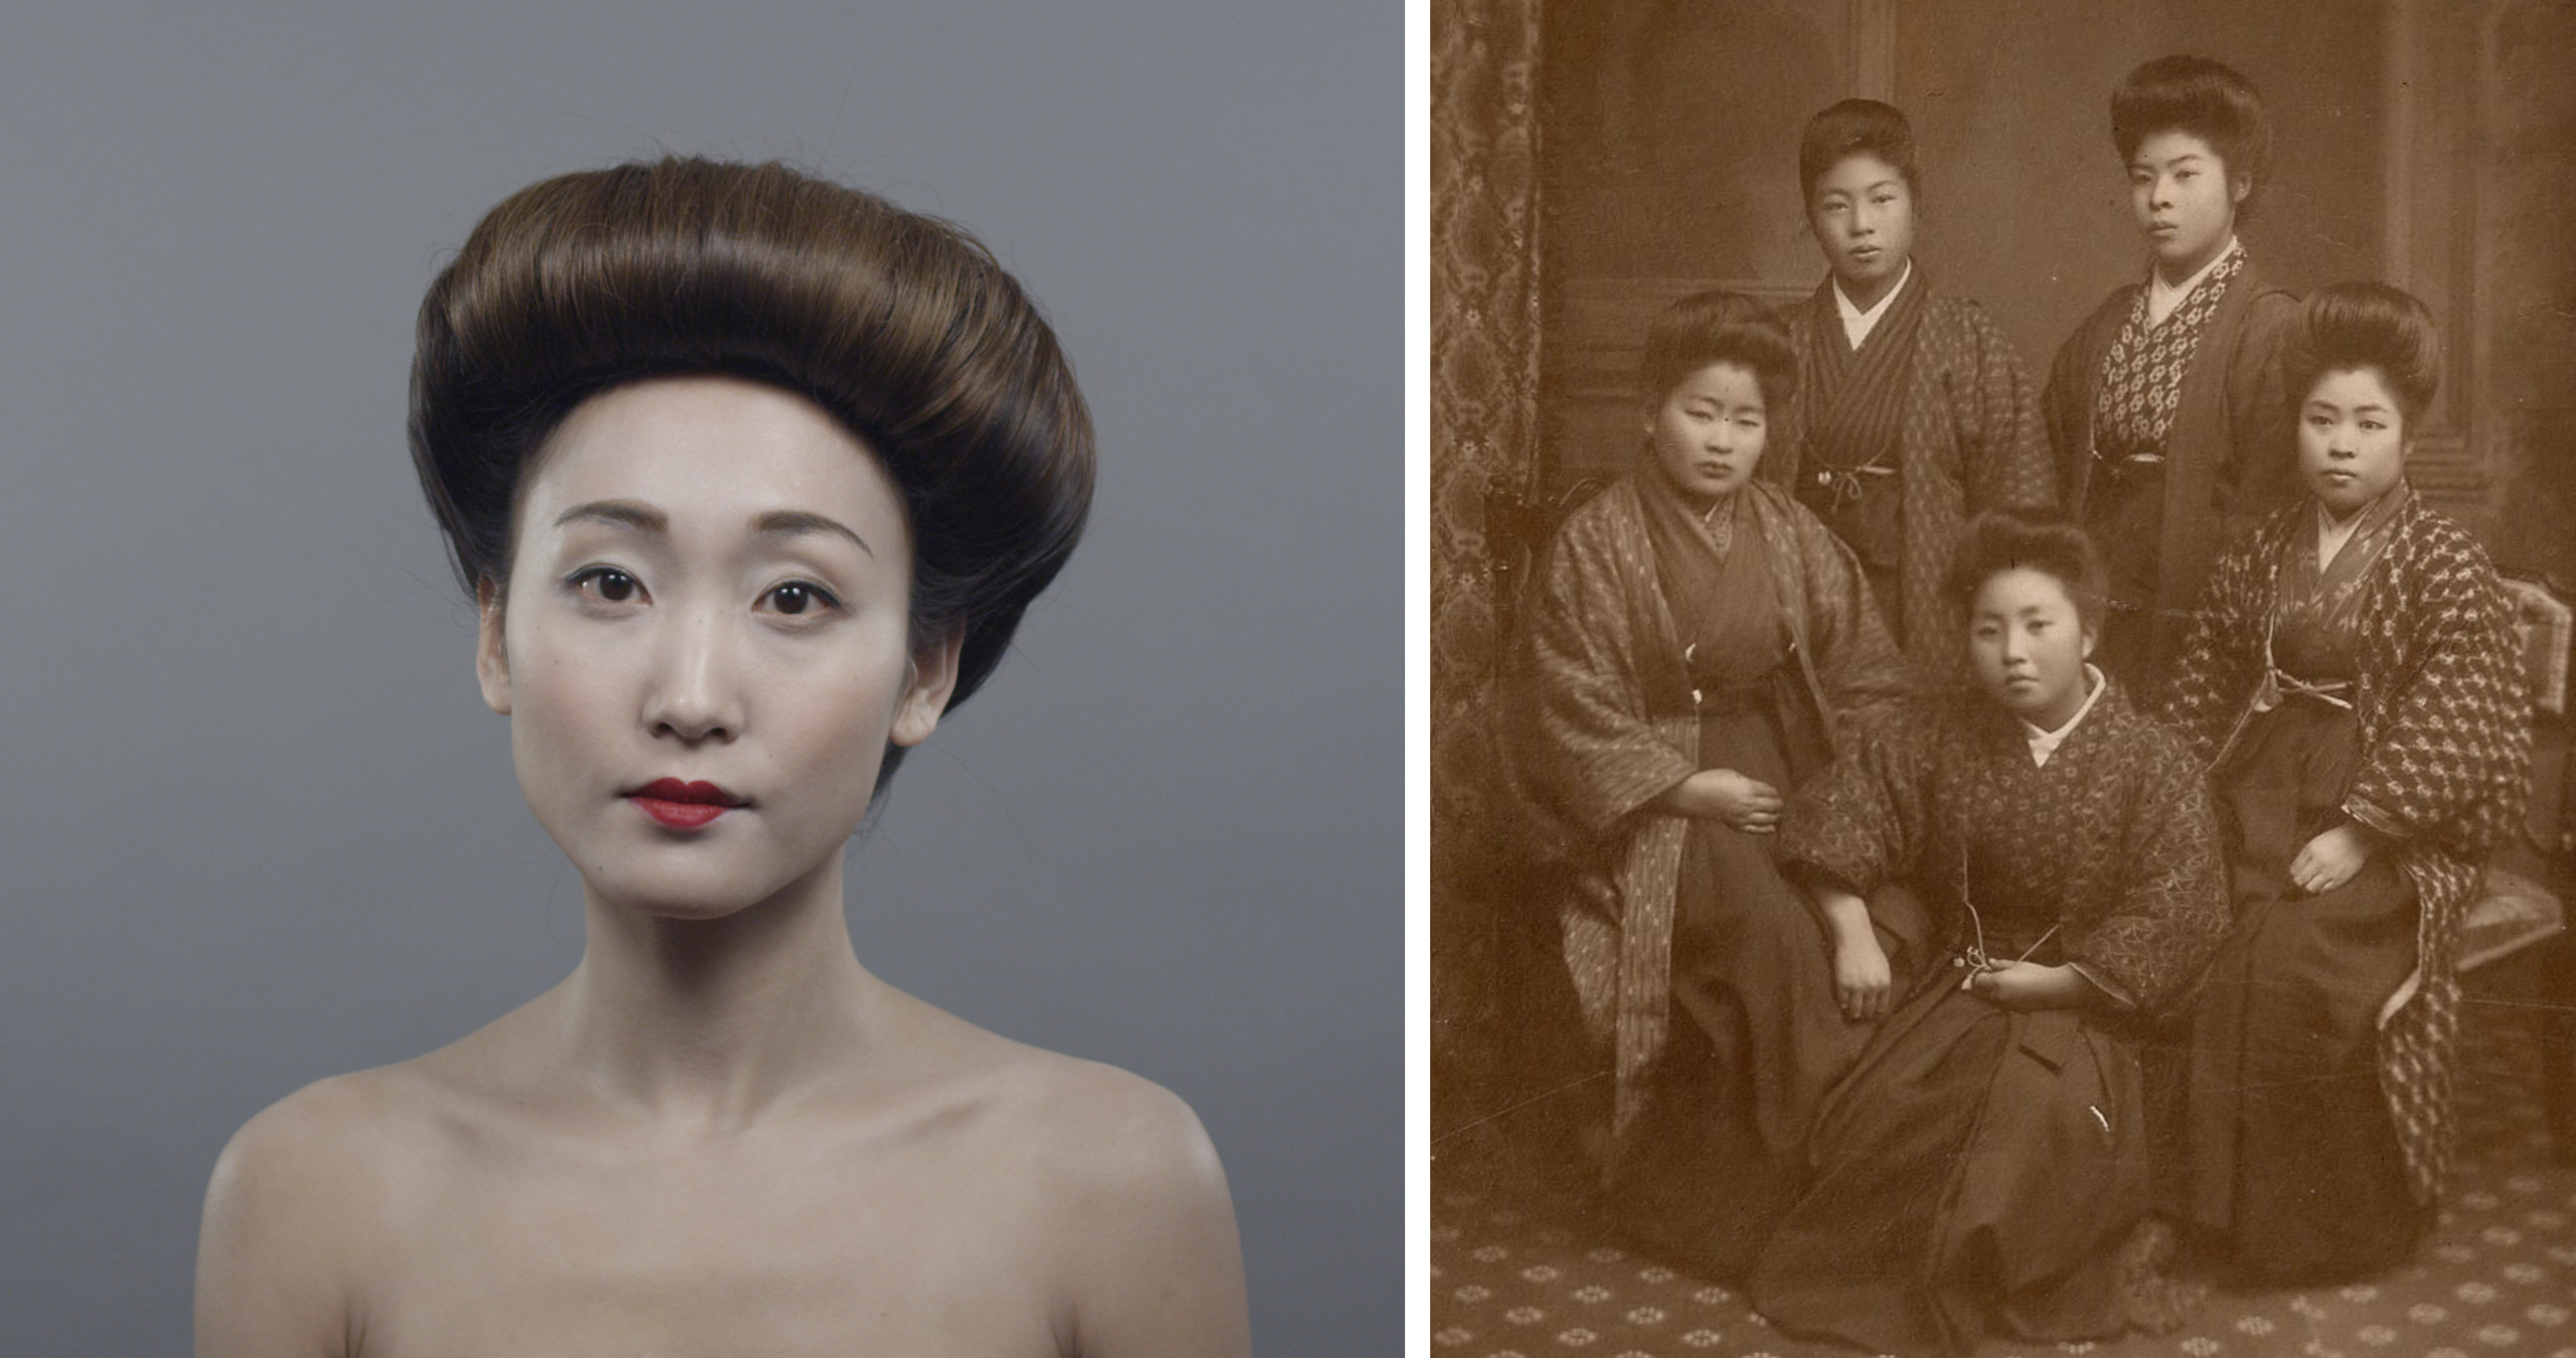 At the end of the Meiji Period, nihongami (traditional bundled hairstyle) was still popular but was mixed with the pompadour look that many women were wearing at the time in Europe. In terms of makeup, ochoboguchi (small lip) style was preferred as women only painted inside their natural lip line.